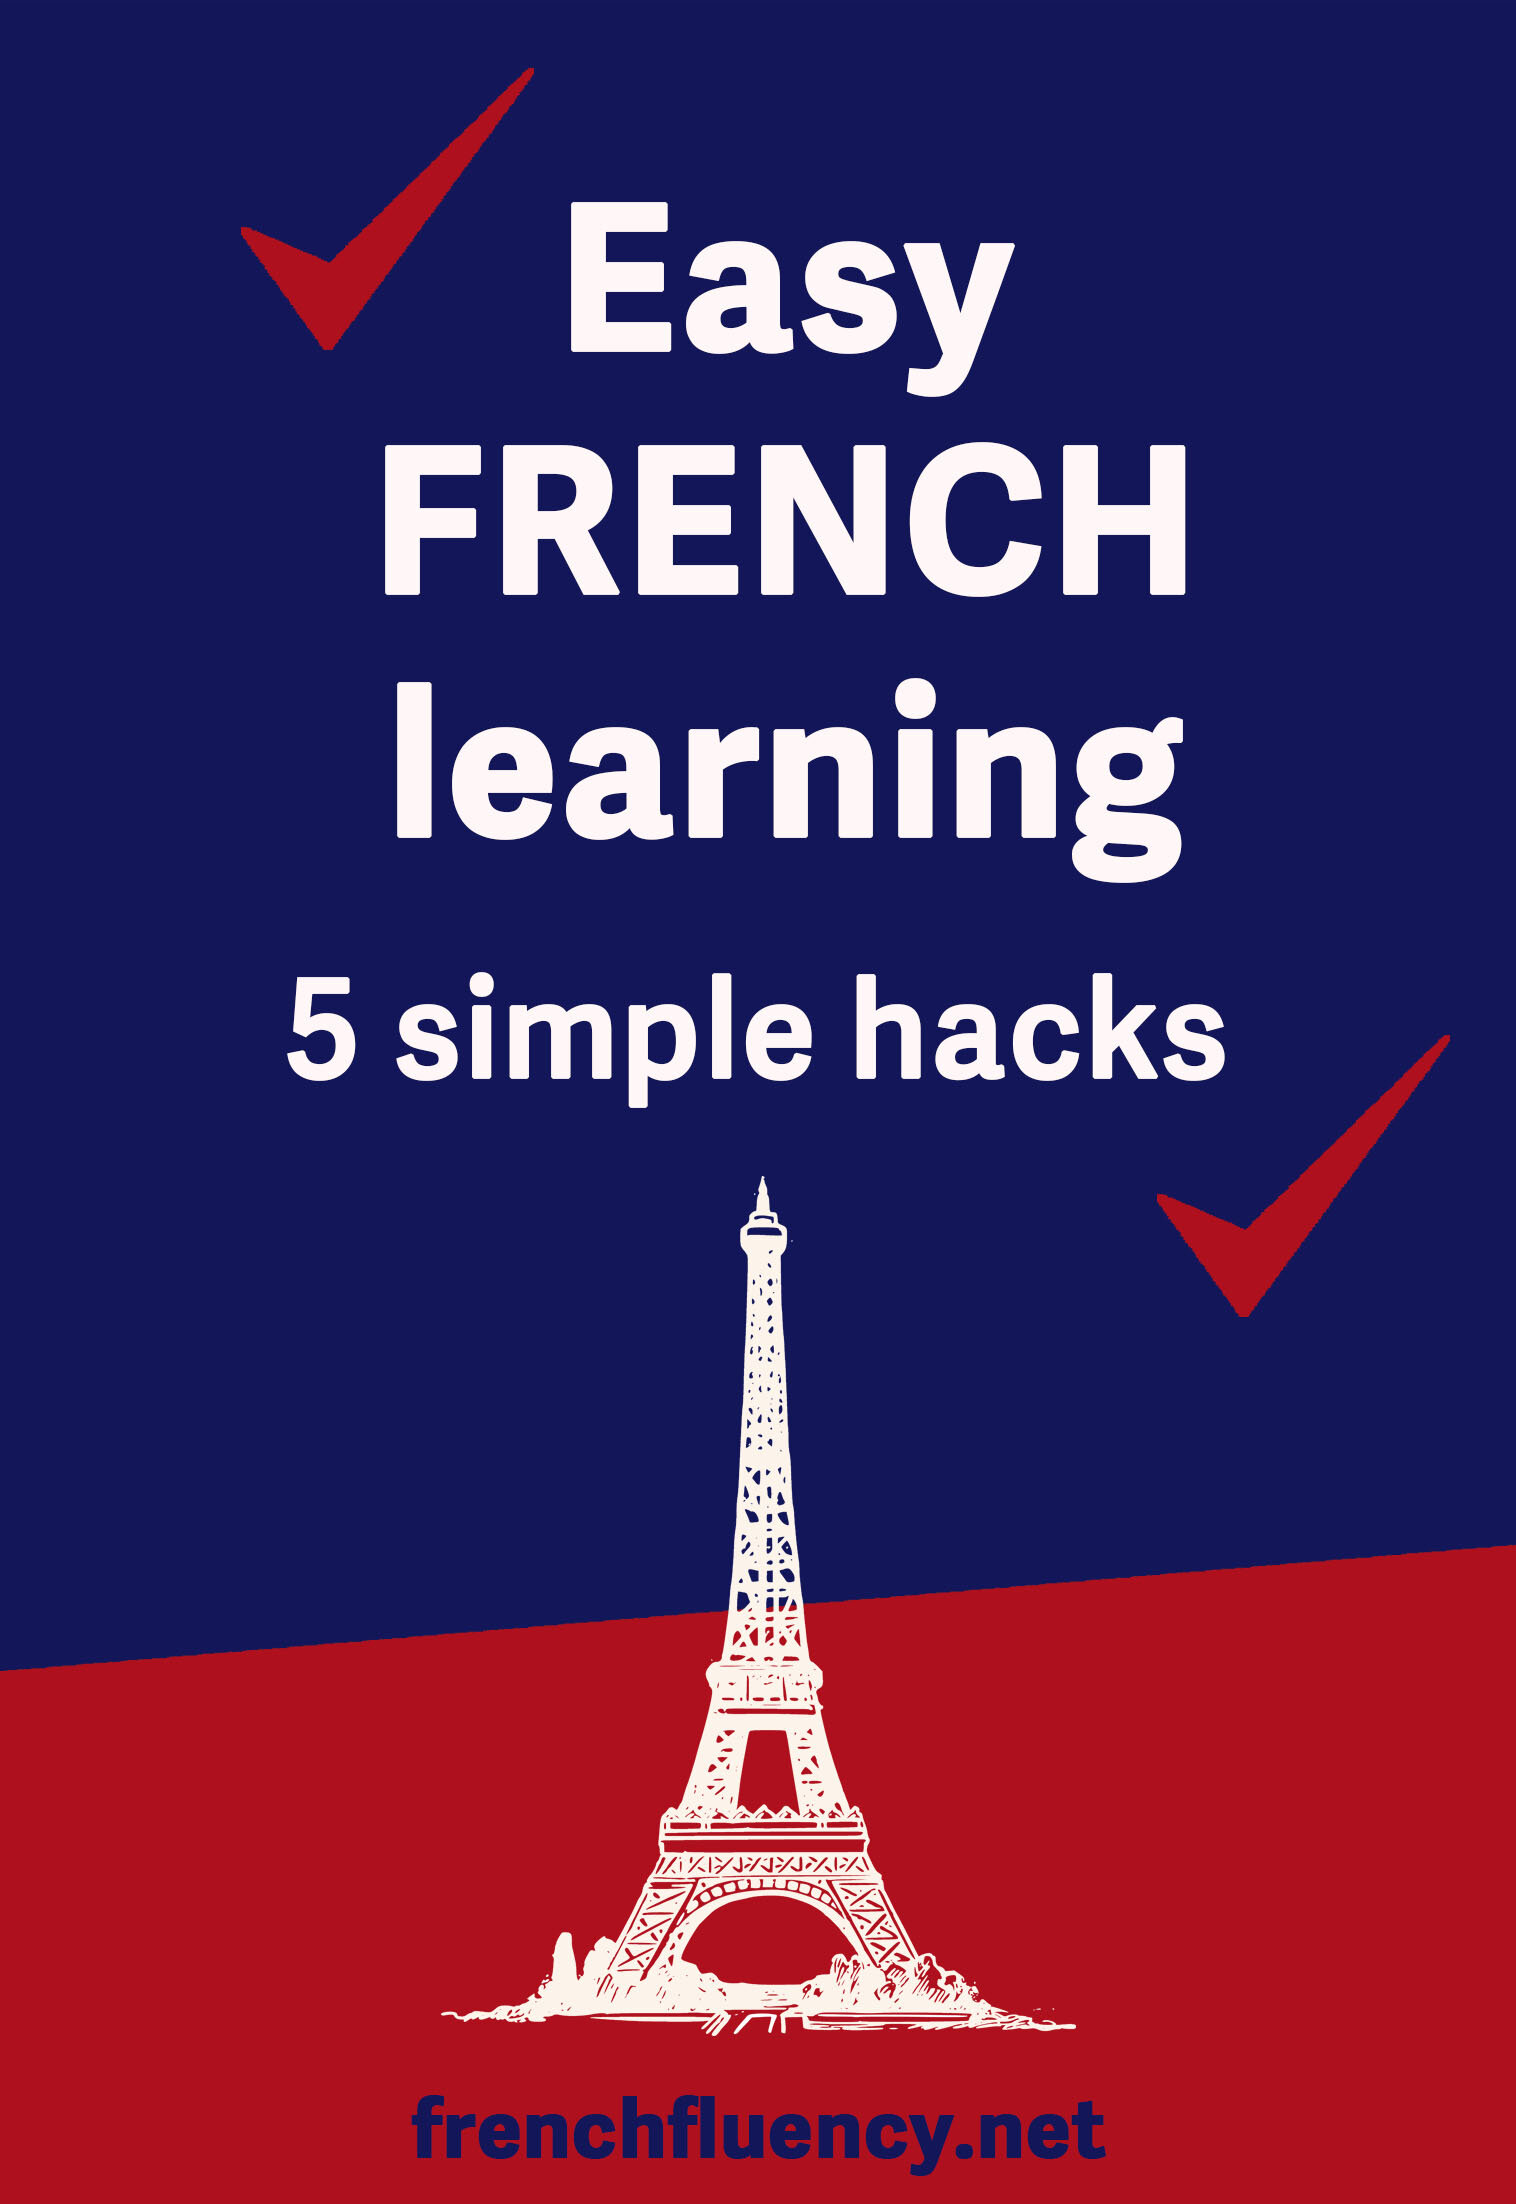 5 best hacks to learn French. Click through to learn all my best tips to make French learning easy and enjoyable for yourself. If you apply all of them, you'll be speaking fluent French in no time!     #learnfrench #frenchlearning #LearnFrenchFast #fluentfrench #frenchvocabulary #frenchgrammar